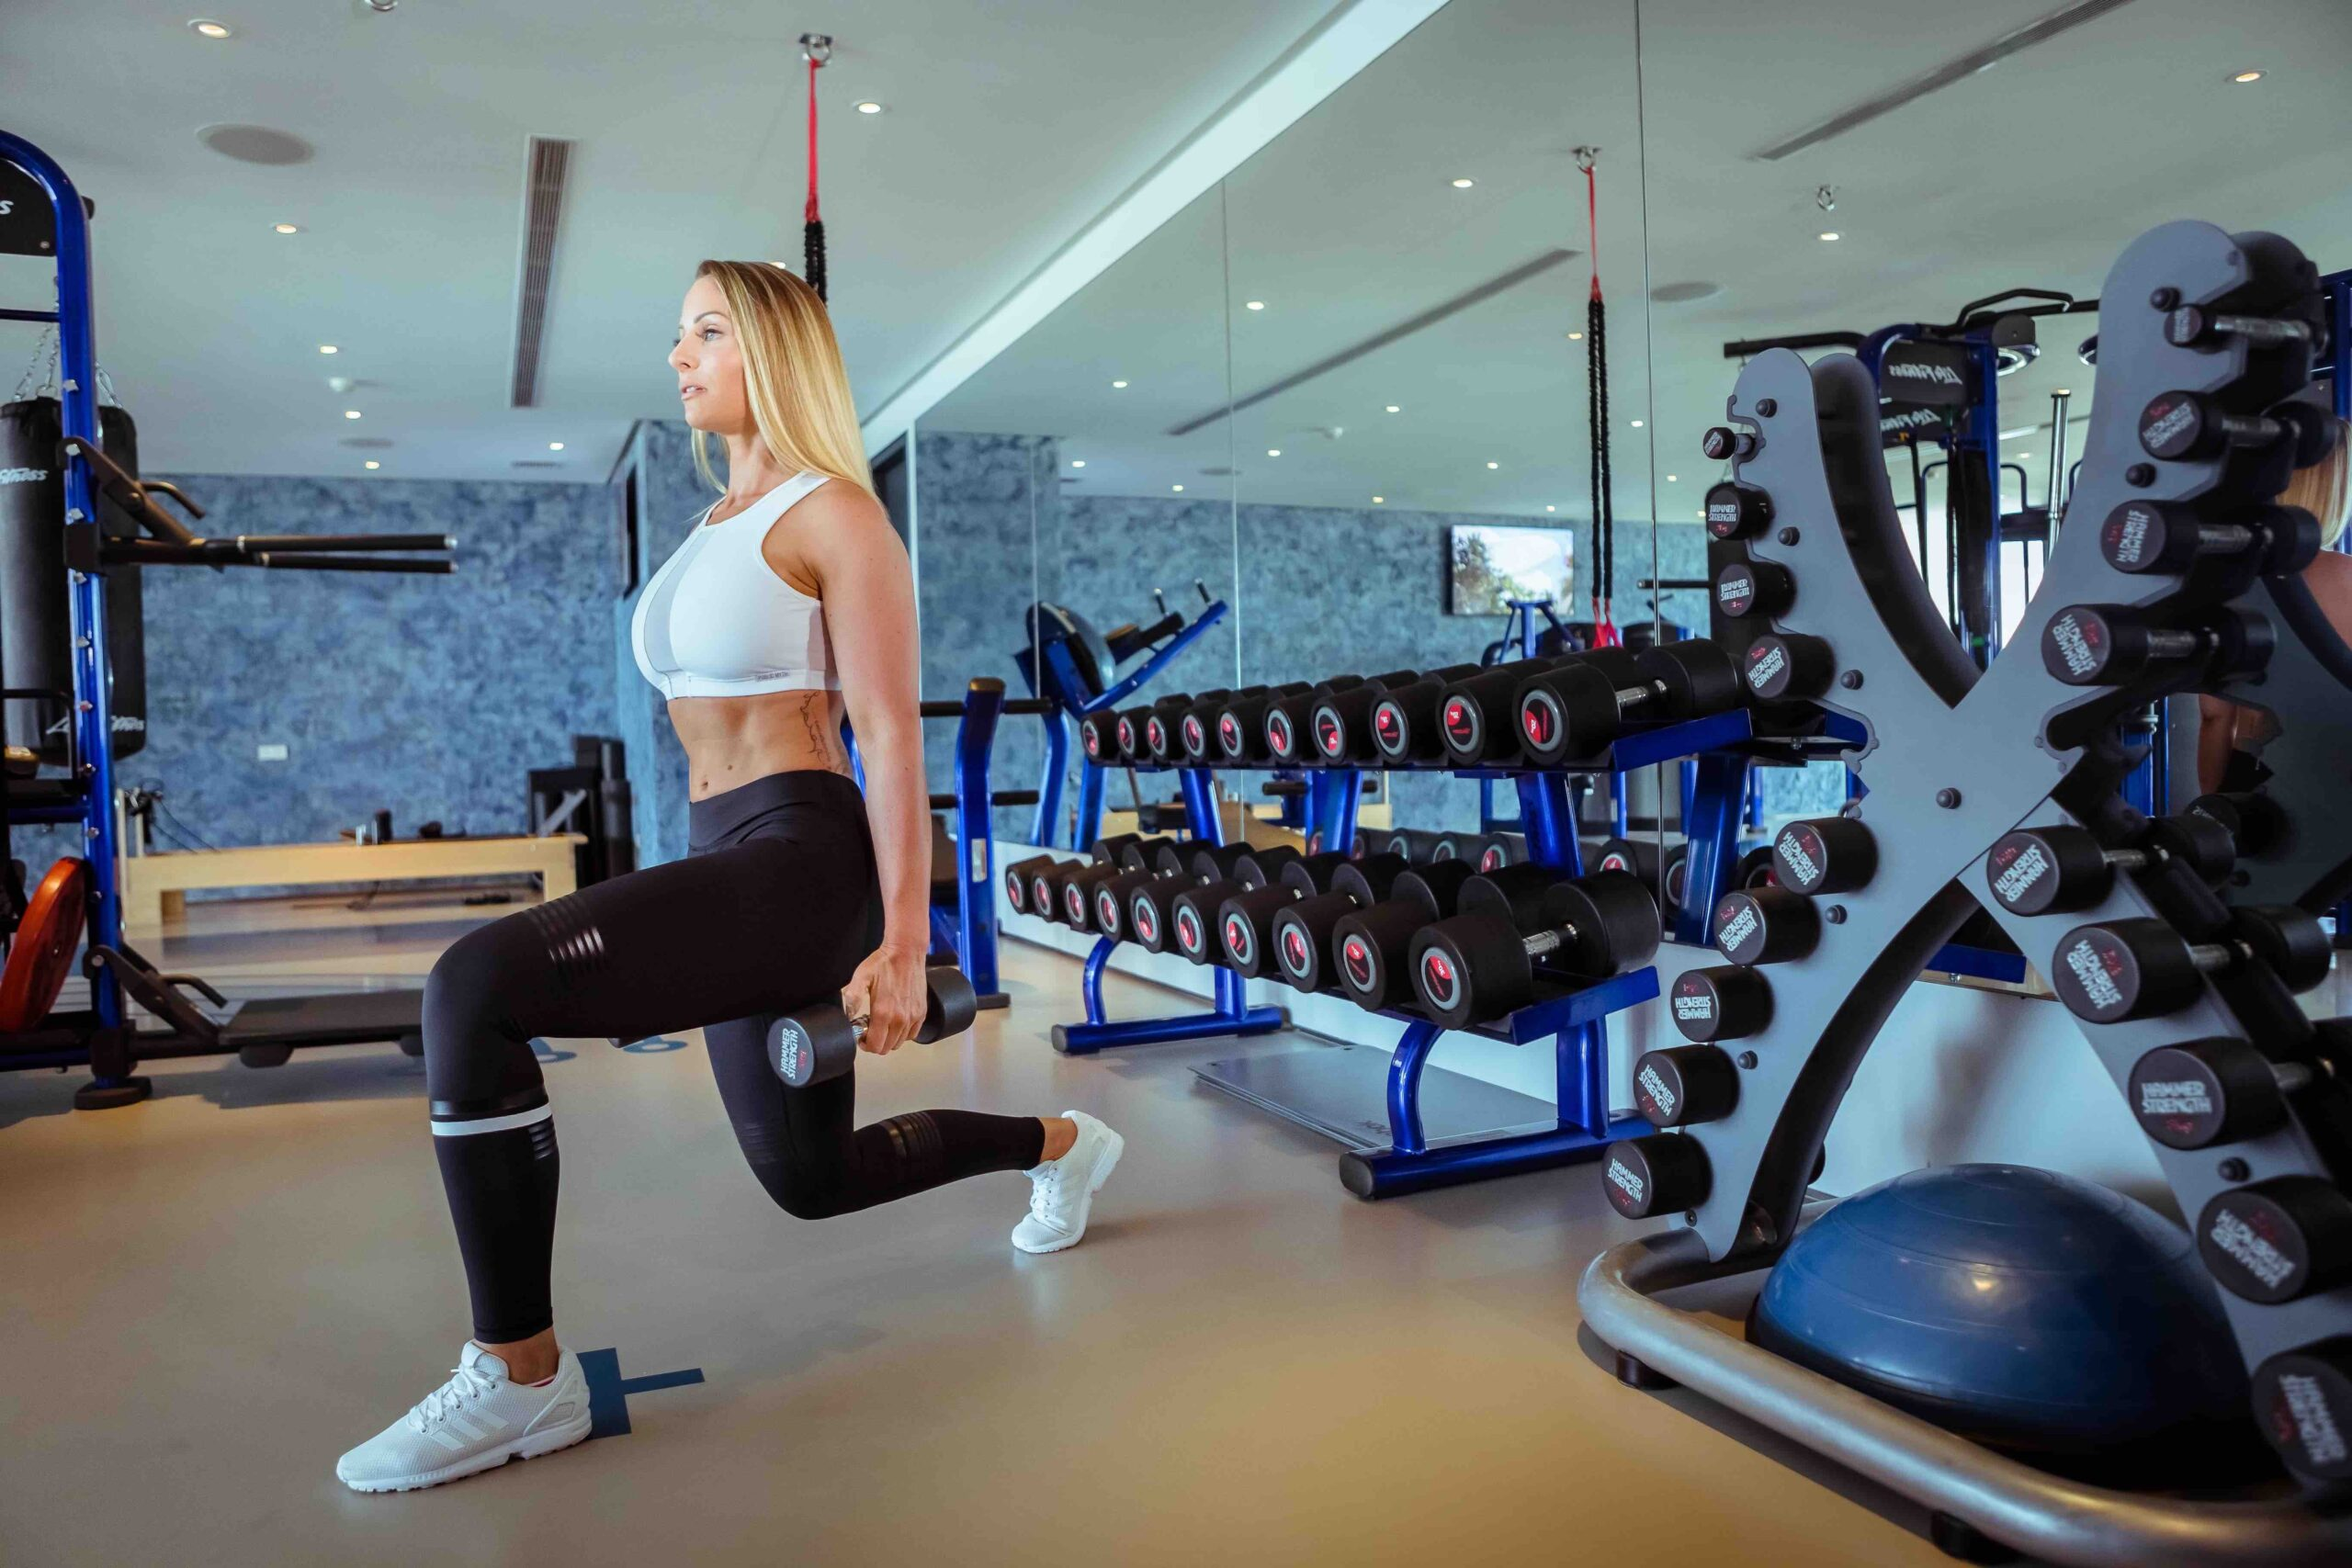 4 Simple Forms Of Exercise You Can Easily Fit Into Your Day